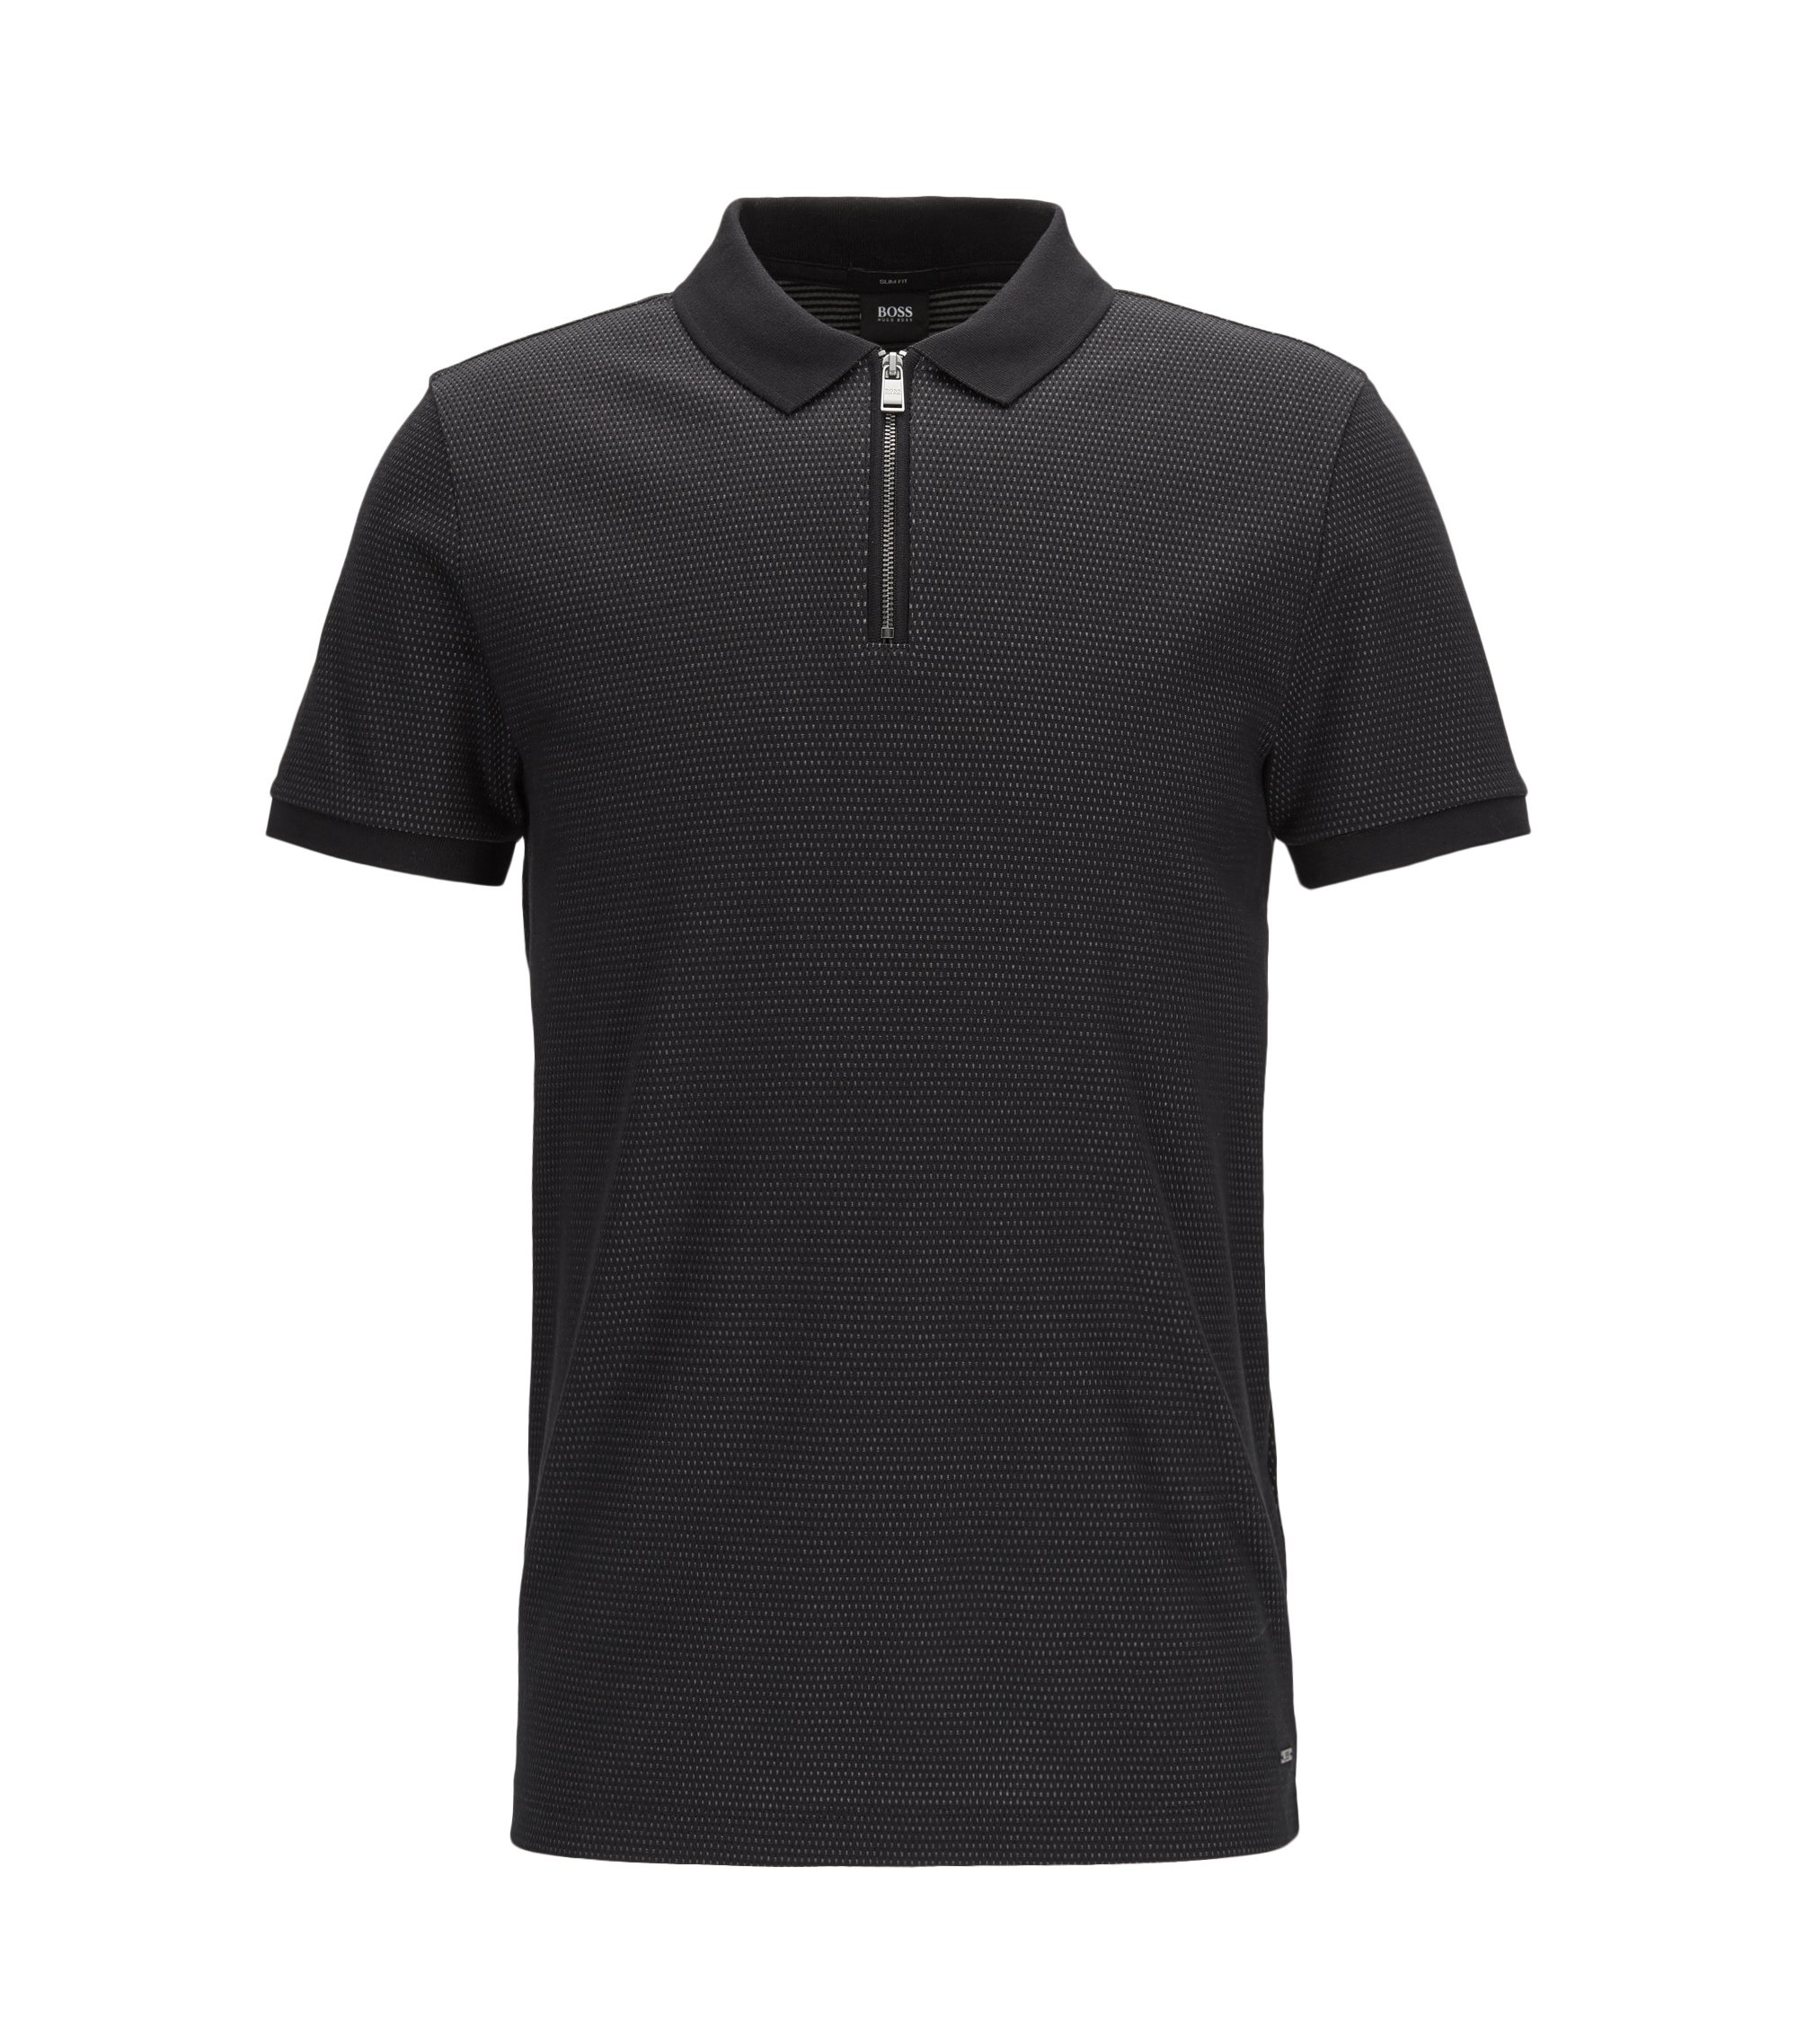 Jacquard Mercerized Cotton Polo Shirt, Slim Fit | Polston, Black